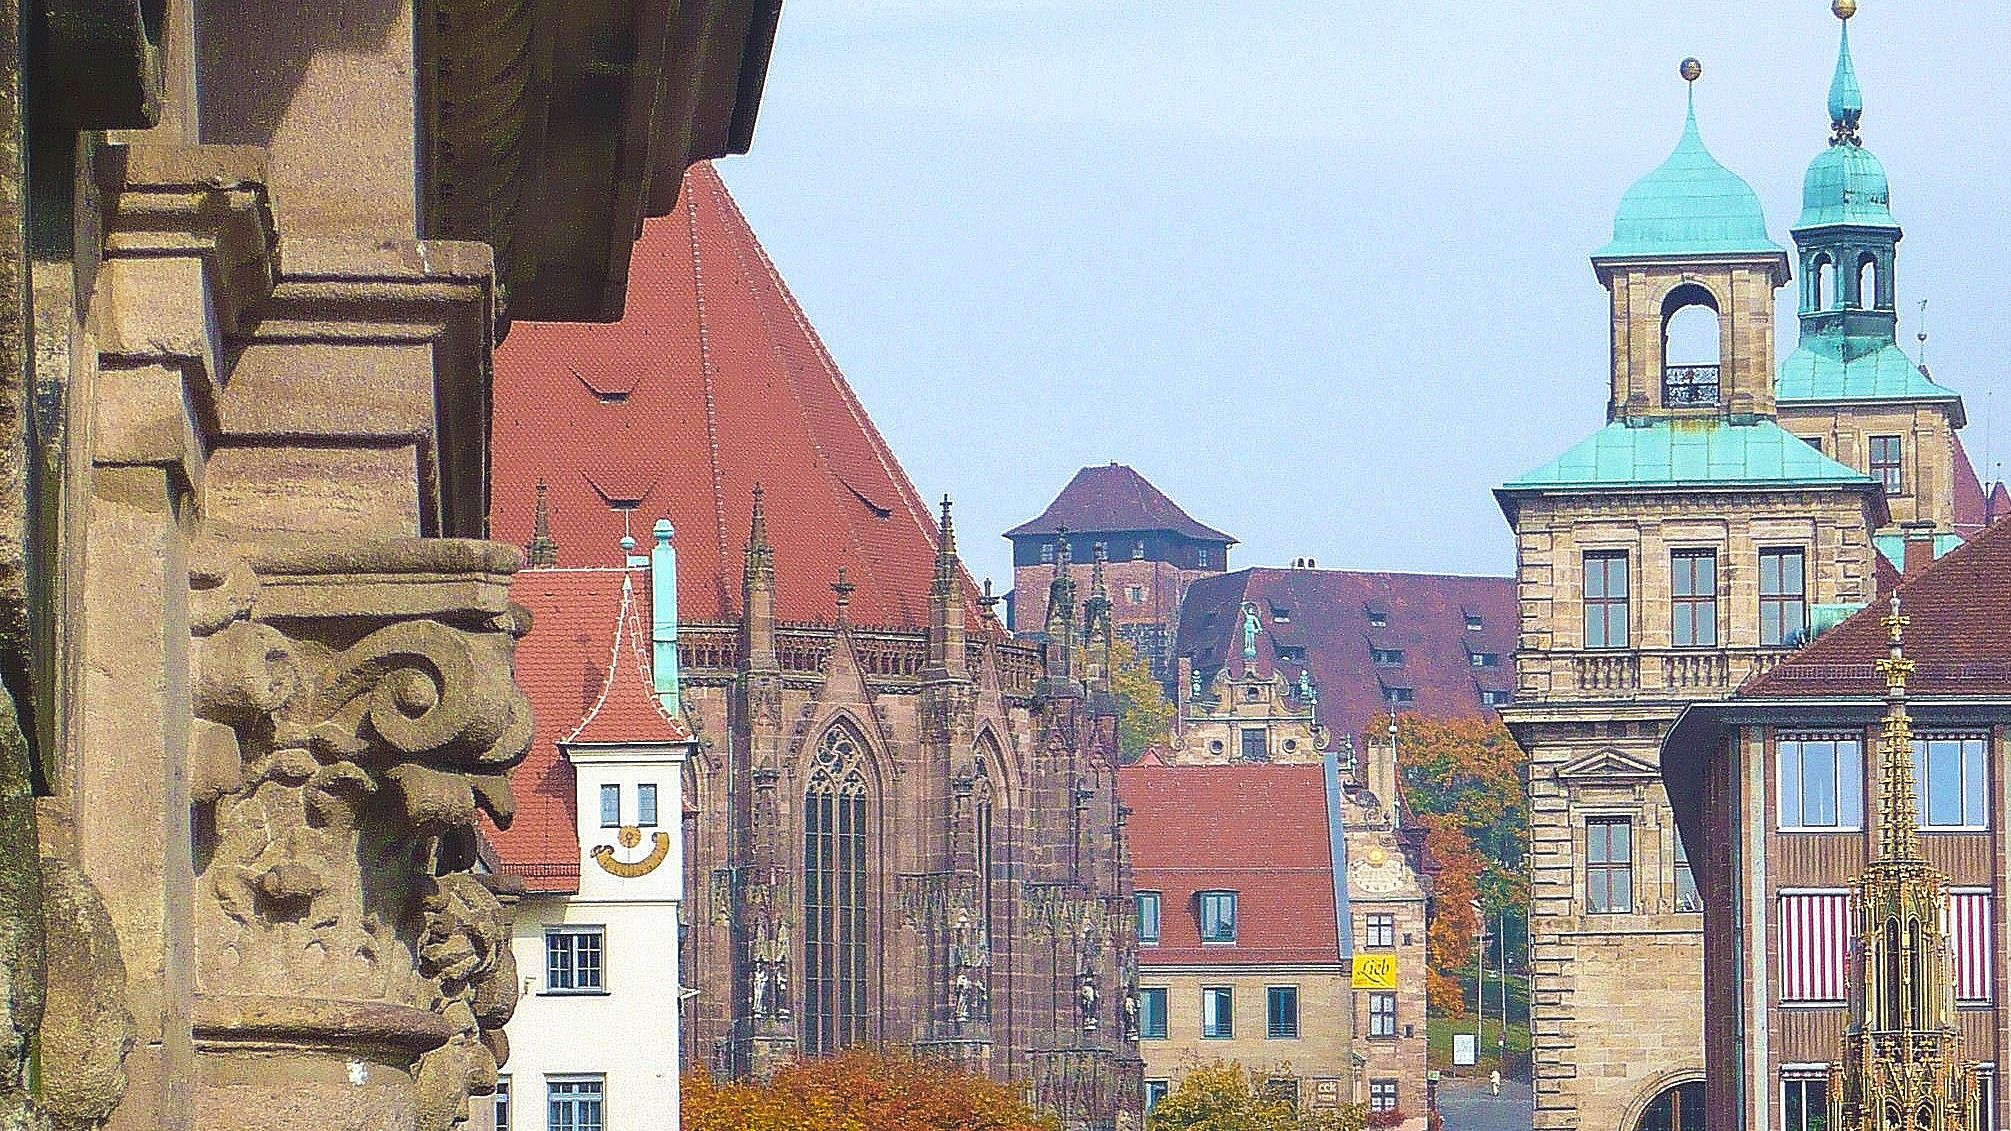 Old Town Nuremberg during the day.